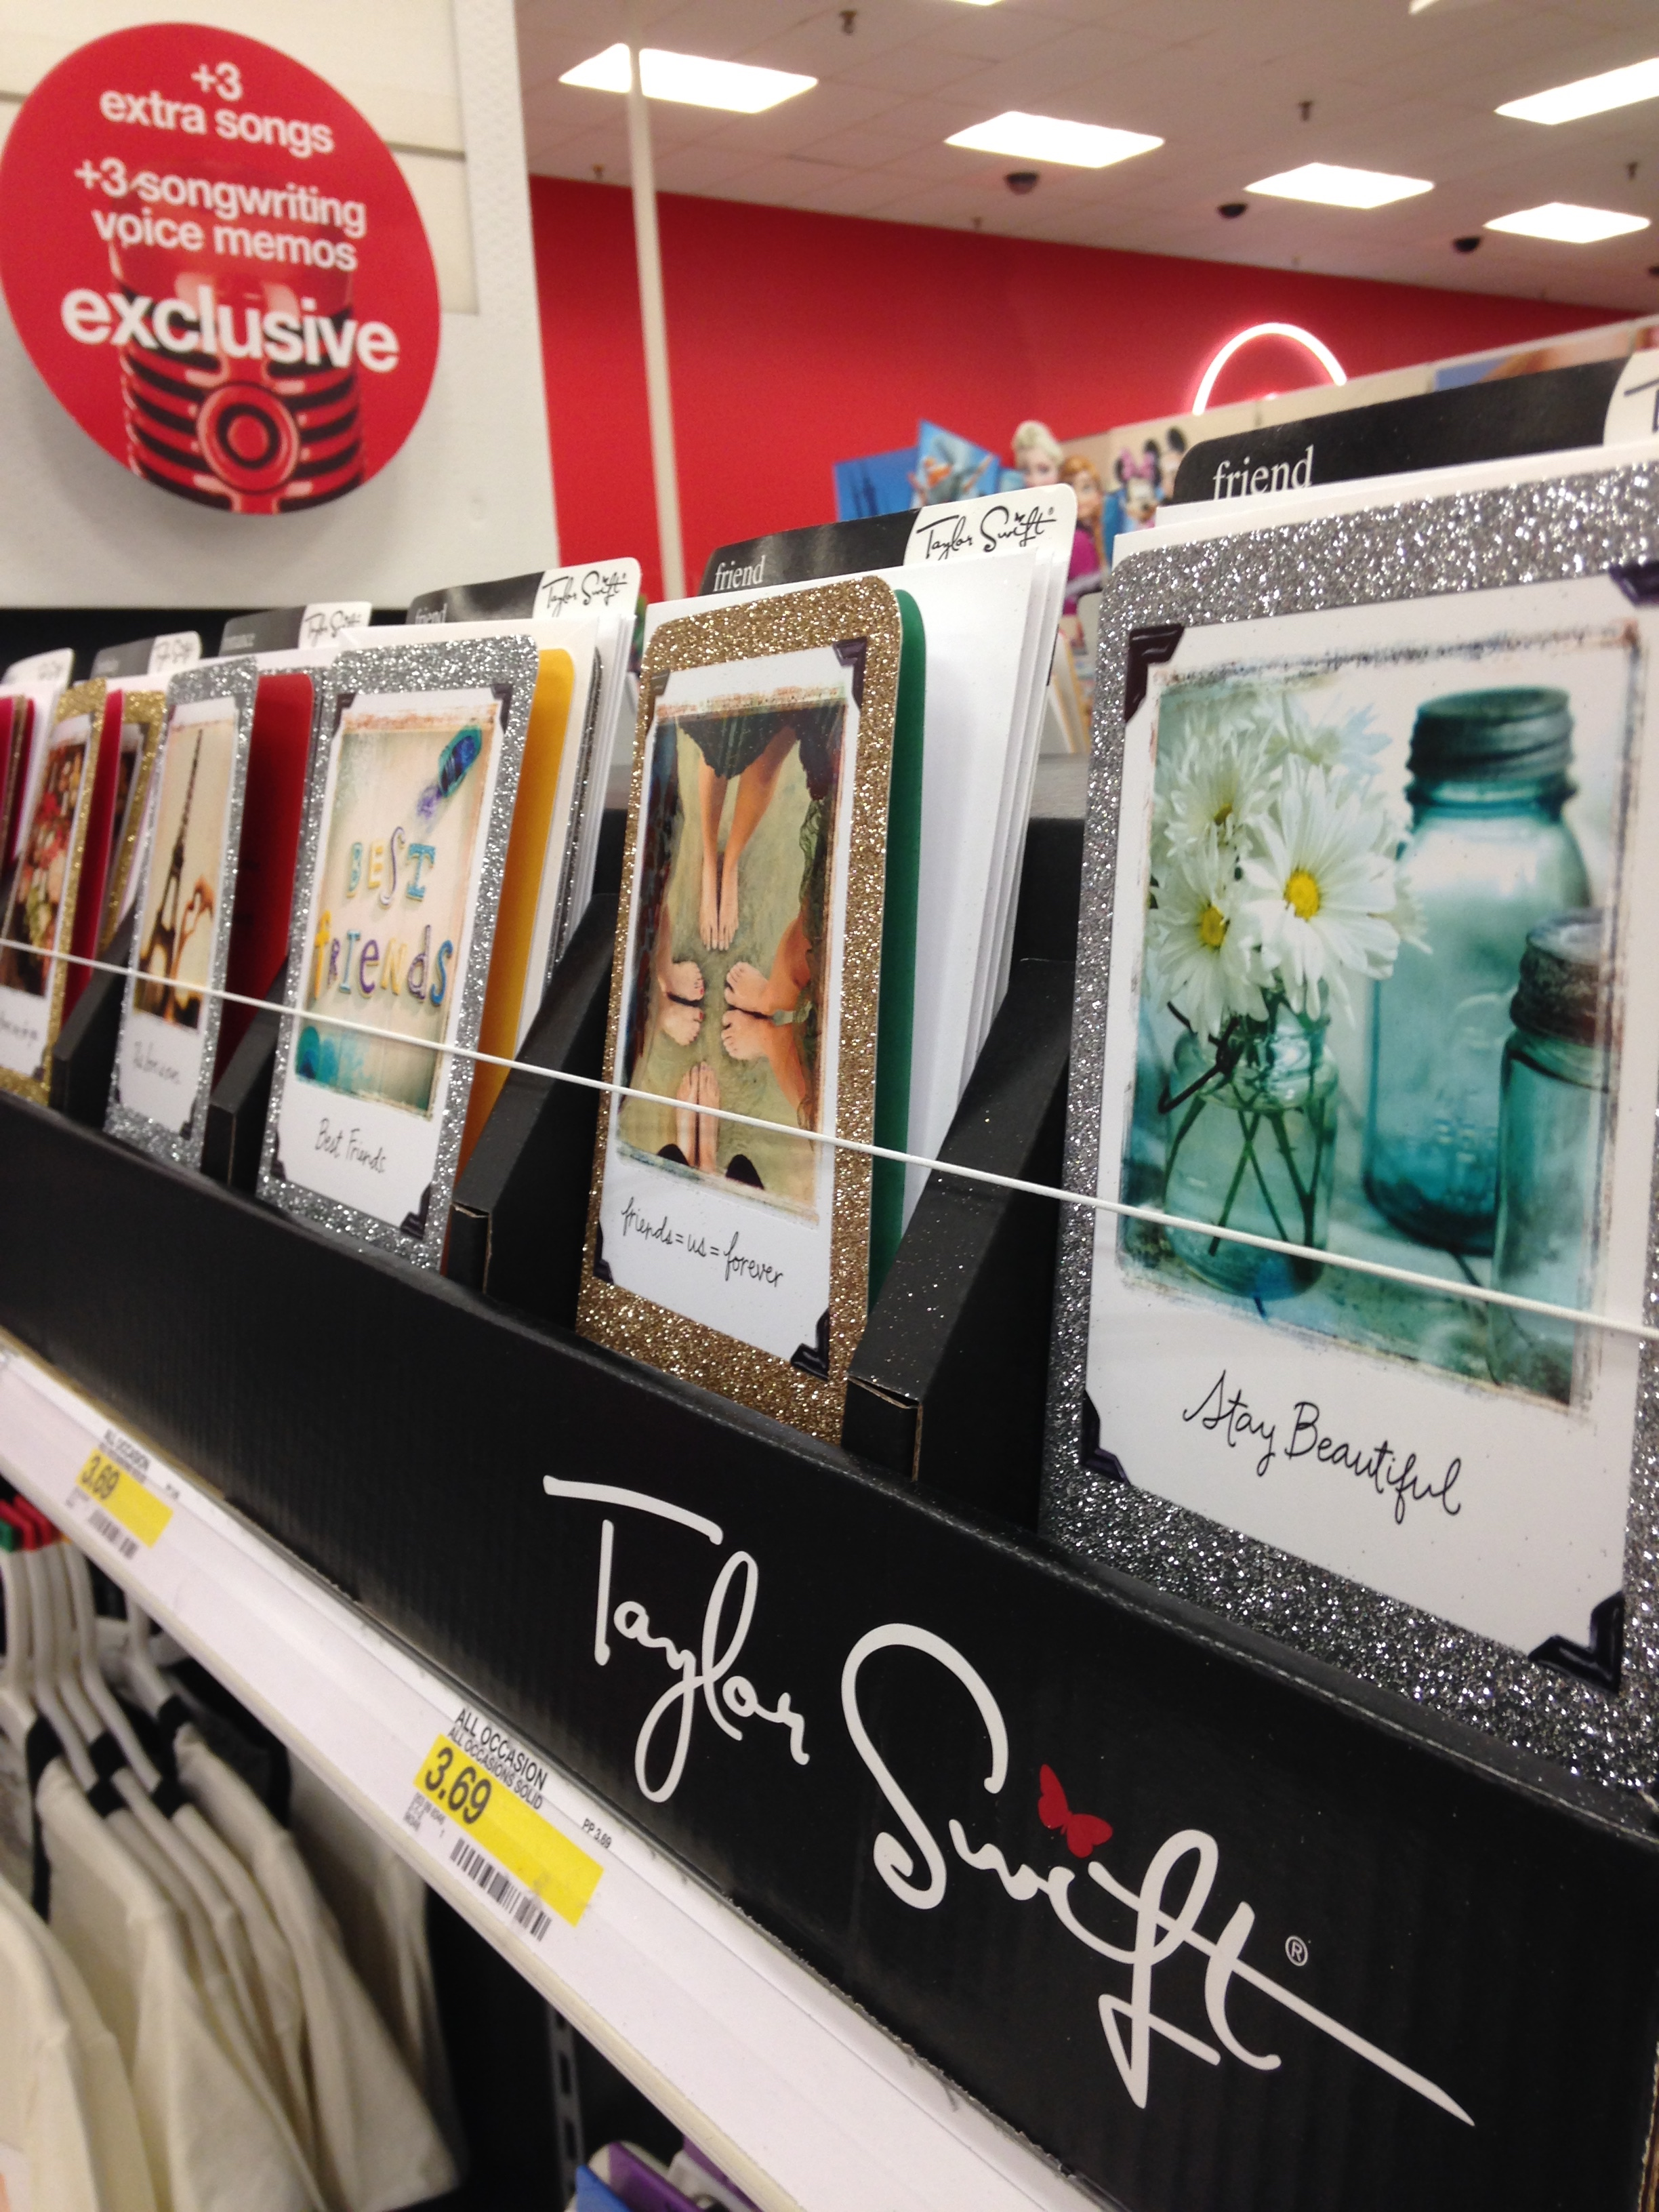 Yes Taylor Swift Has Her Own Line Of Cards At Target And She Wants Us All